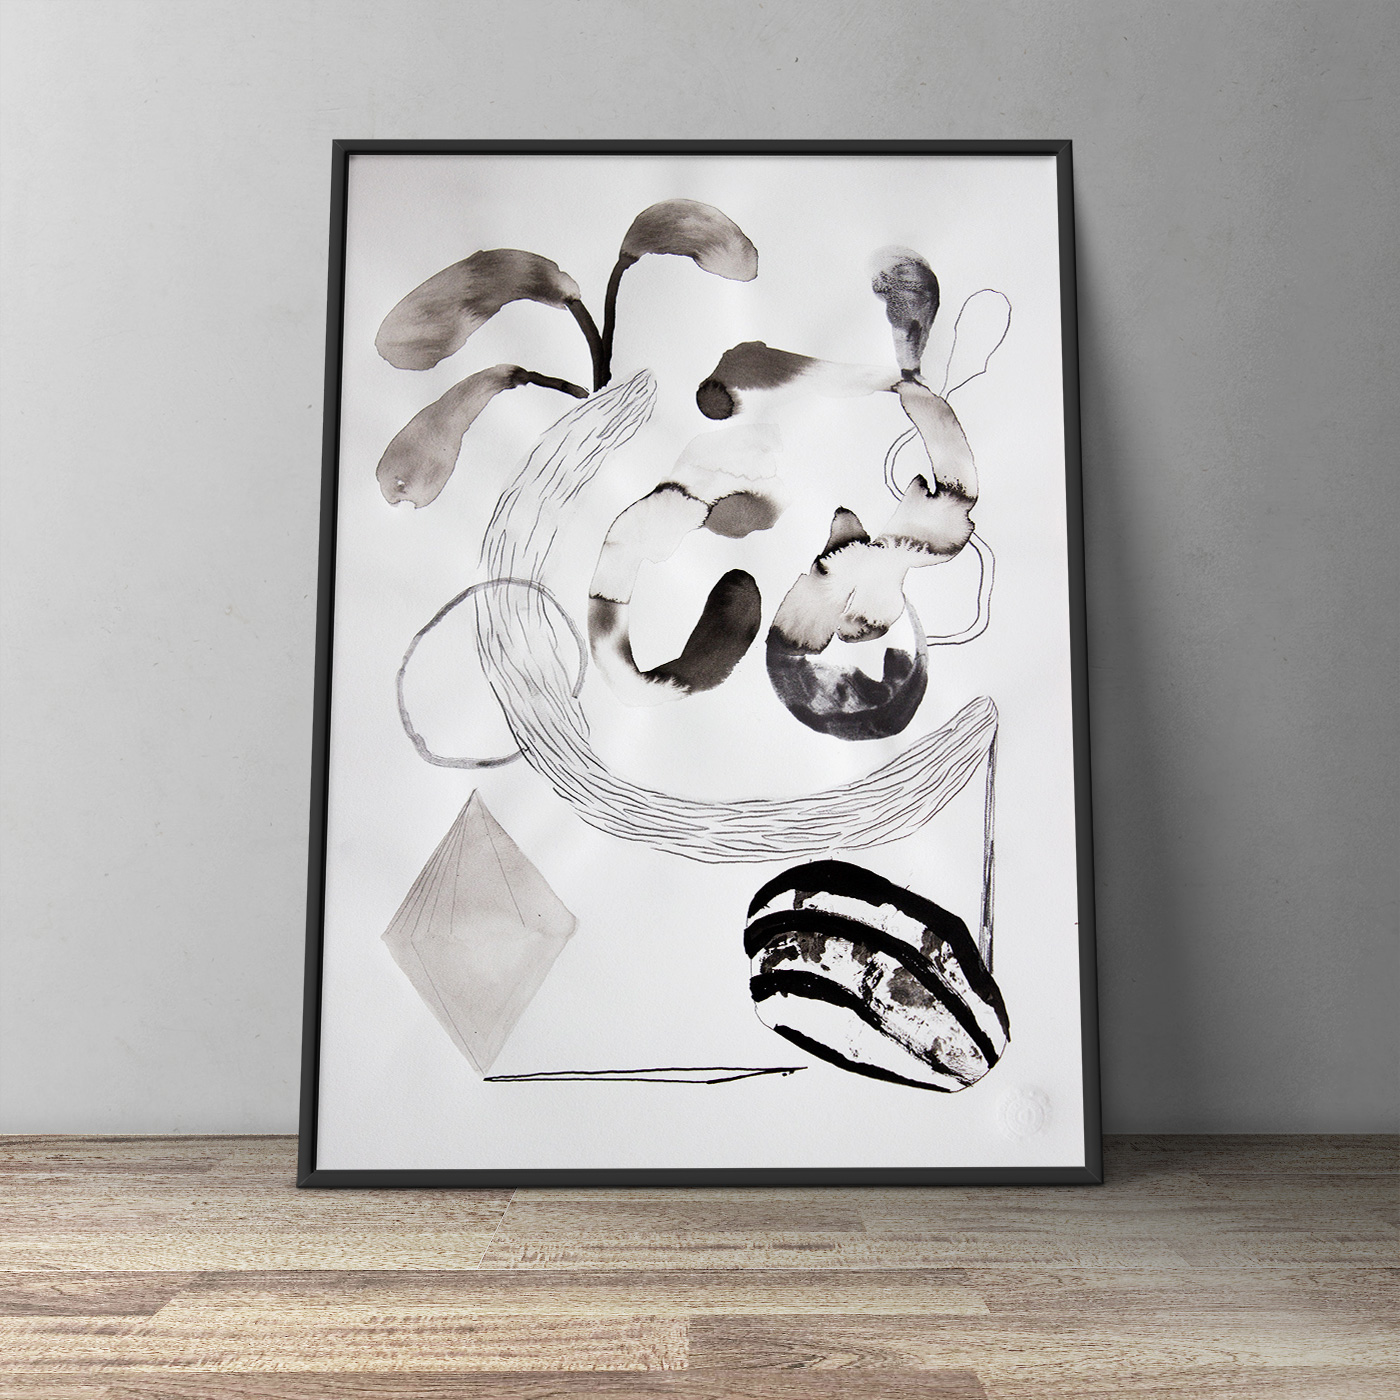 drawings, gouache, watercolors, abstract, illustrative, minimalistic, monochrome, botany, patterns, black, grey, white, artliner, watercolor, abstract-forms, decorative, flowers, forest, interior, interior-design, plants, trees, Buy original high quality art. Paintings, drawings, limited edition prints & posters by talented artists.